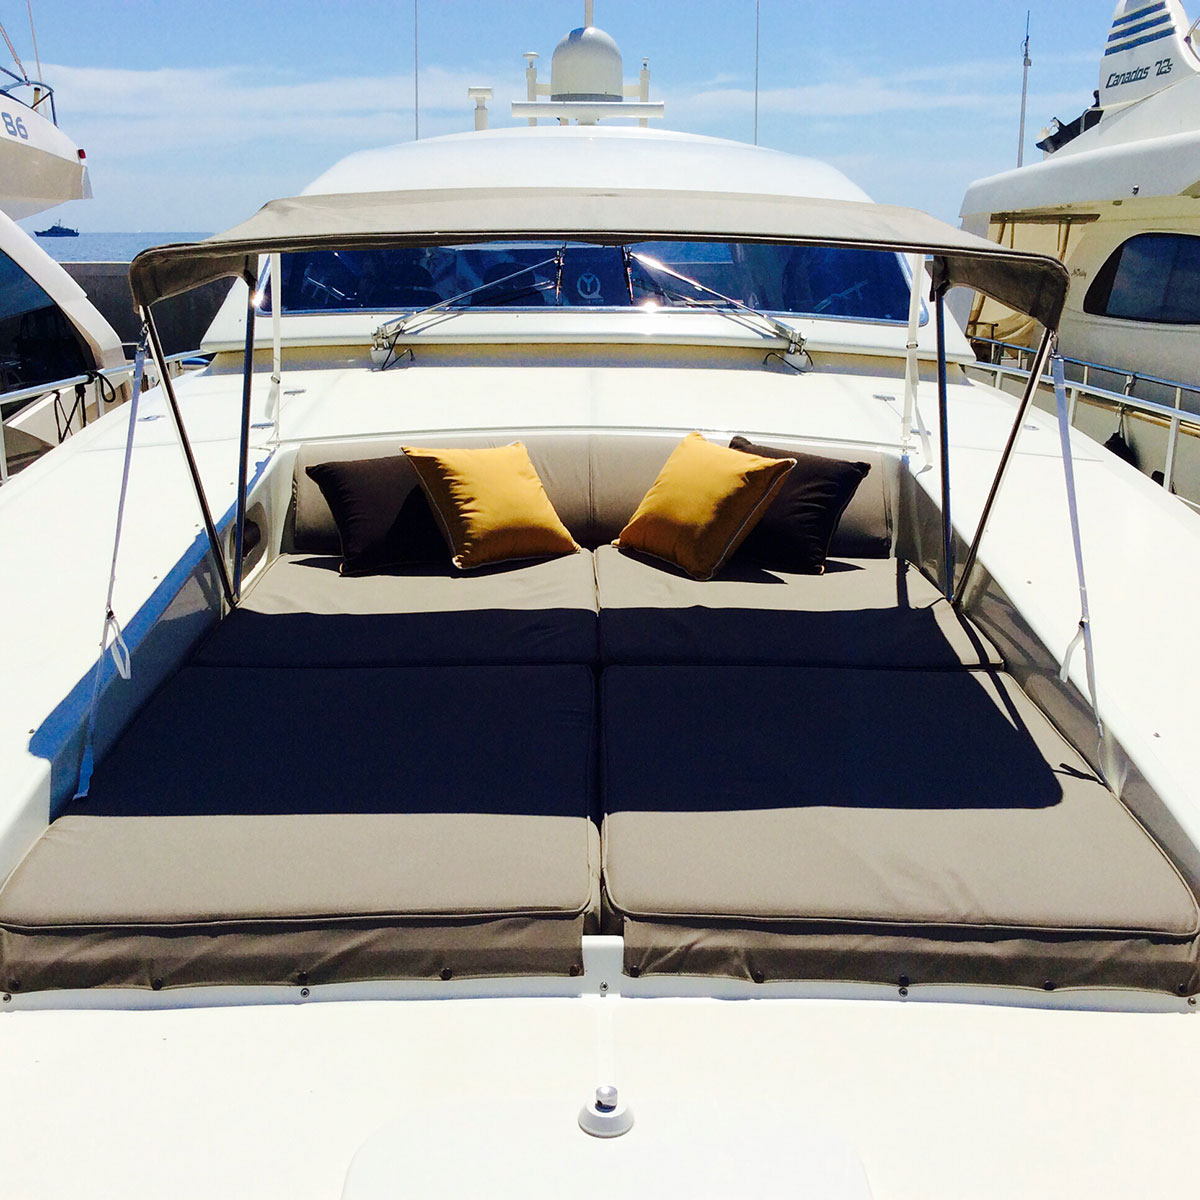 leopard 23 africa dream yacht charter monaco nice cannes. Black Bedroom Furniture Sets. Home Design Ideas